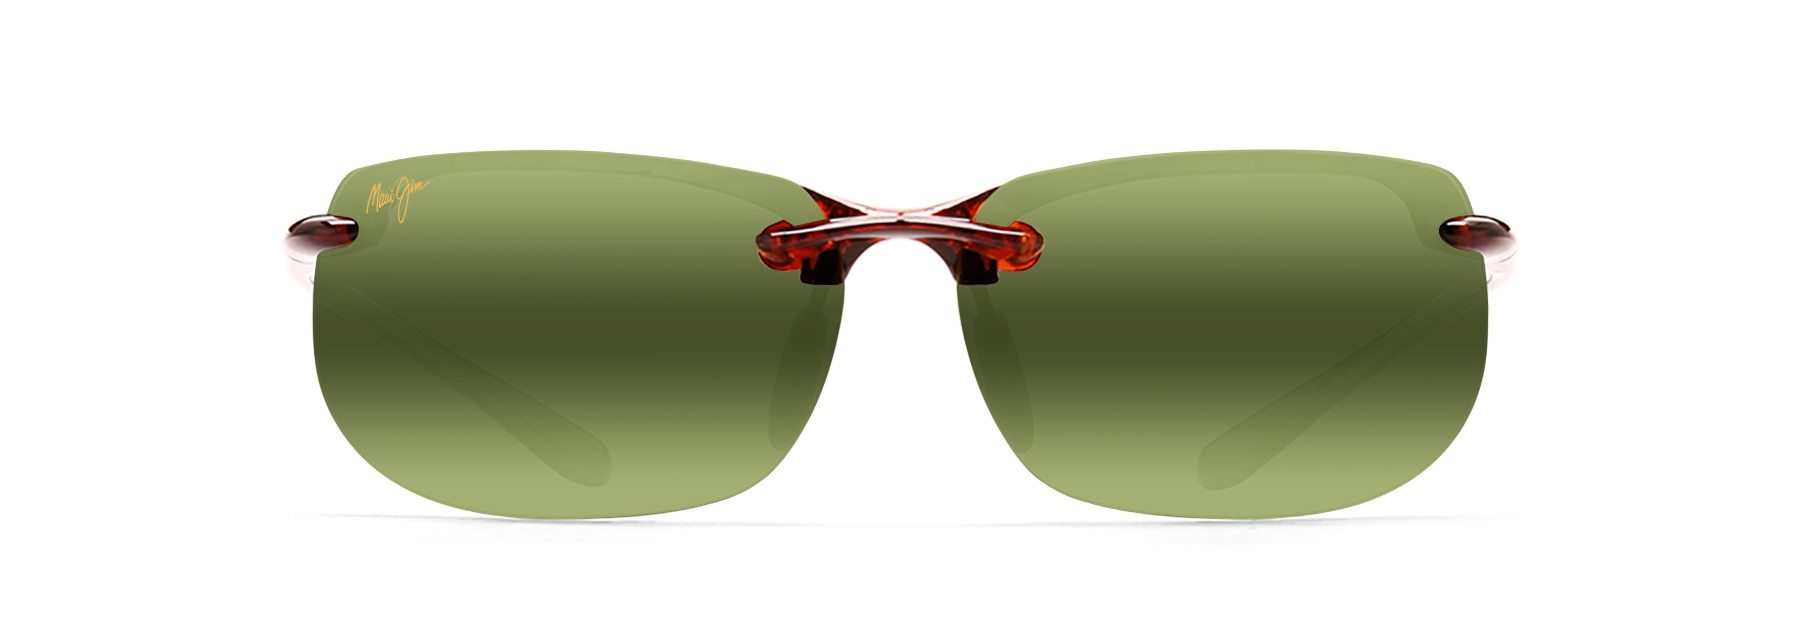 MyMaui Banyans MM412-003 Sunglasses